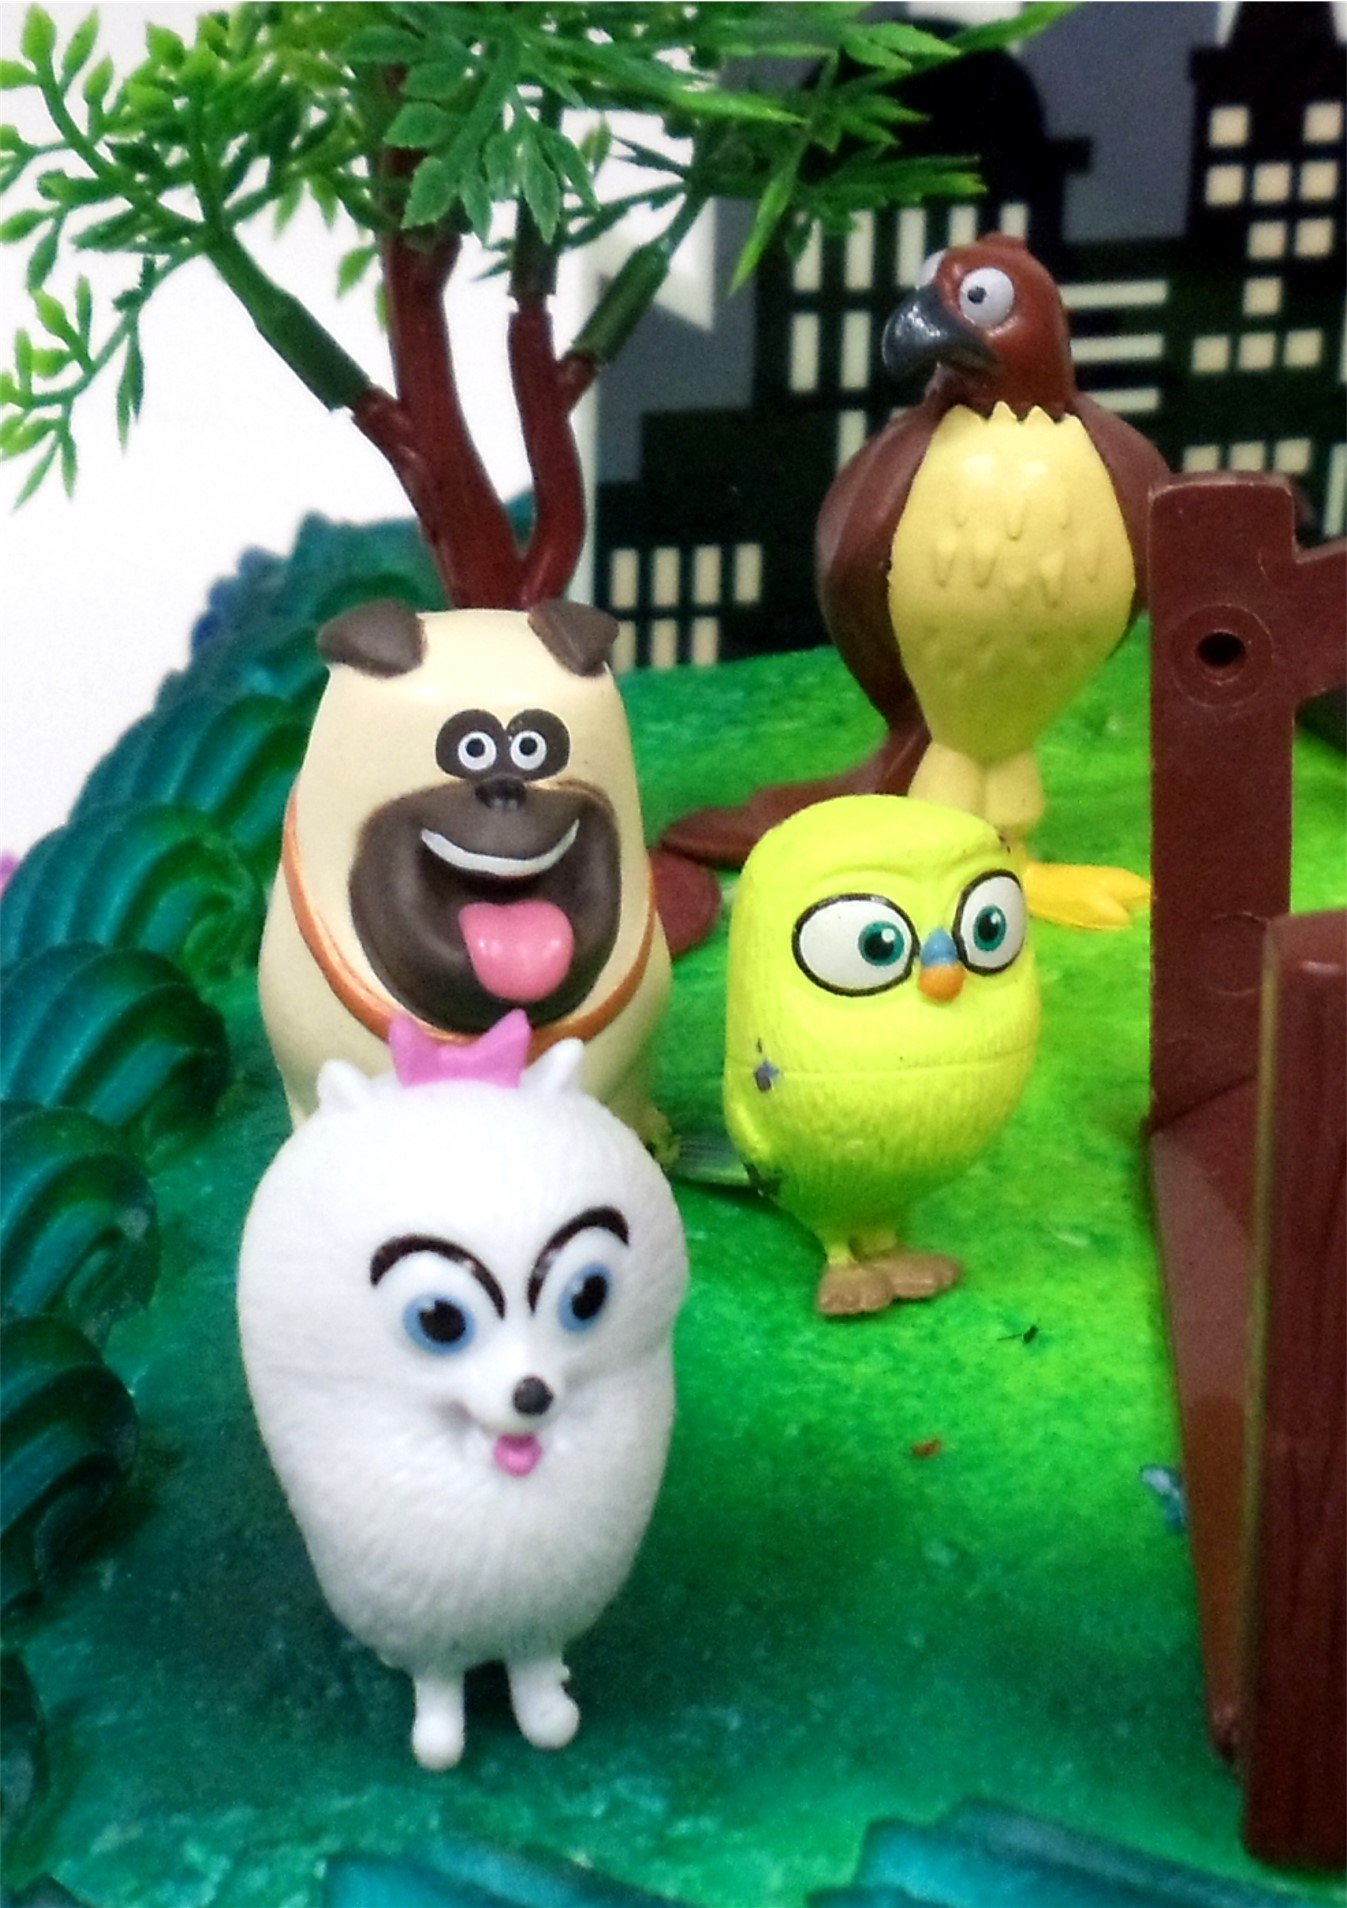 Secret Life of Pets Birthday Cake Topper Set Featuring Character Figures and Decorative Accessories by Cake Toppers (Image #3)